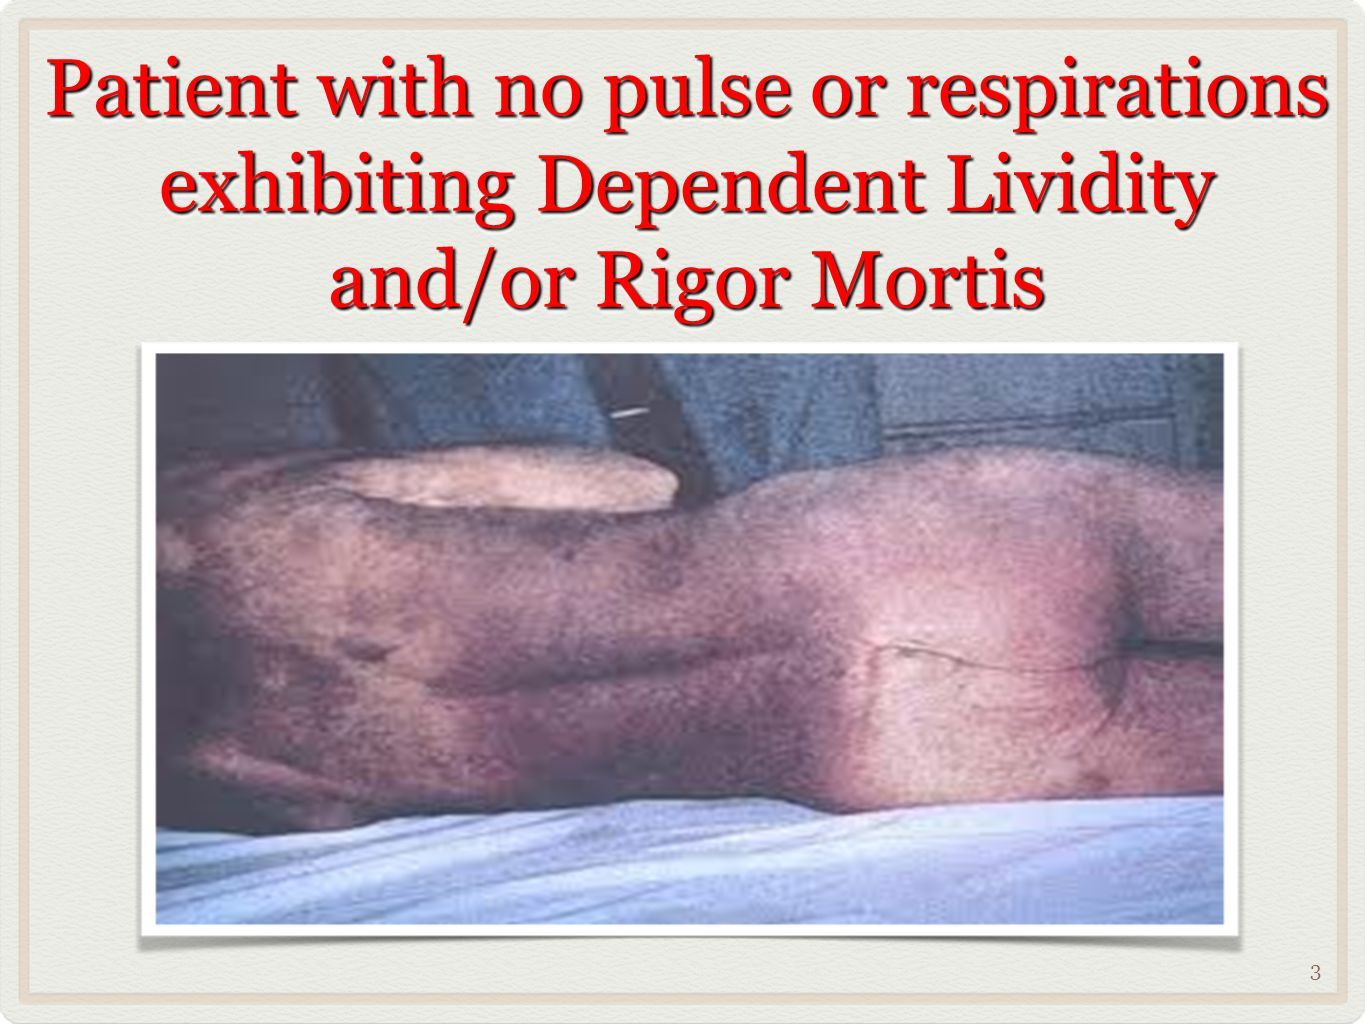 Patient with no pulse or respirations exhibiting Dependent Lividity and/or Rigor Mortis